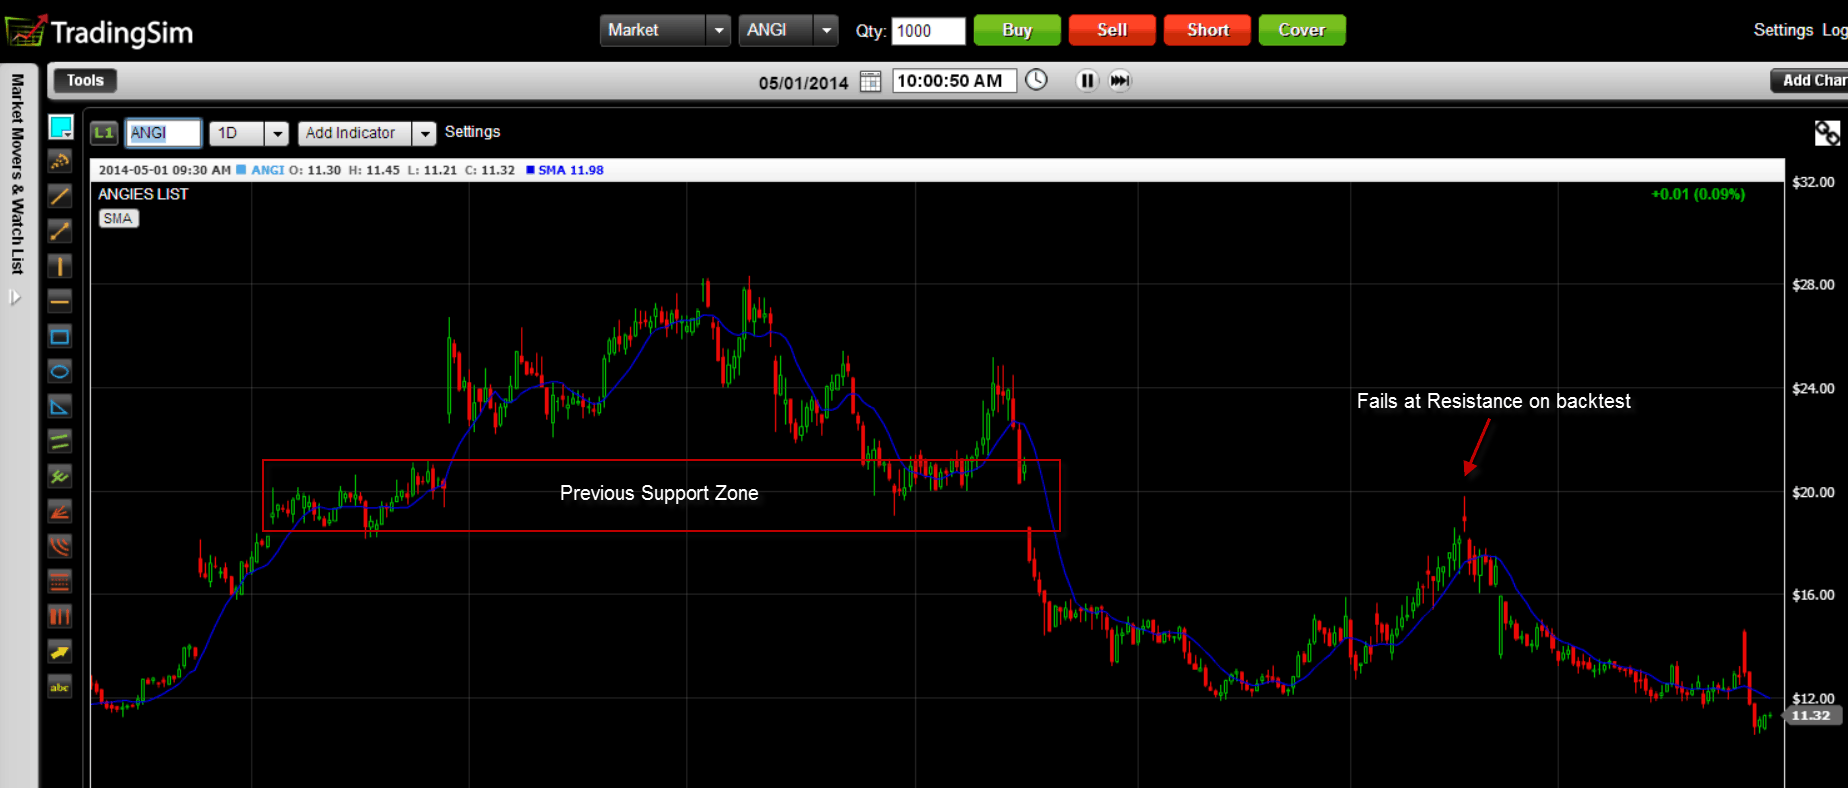 Why do technical indicators fail tradingsim how to buy a stock at support fandeluxe Gallery